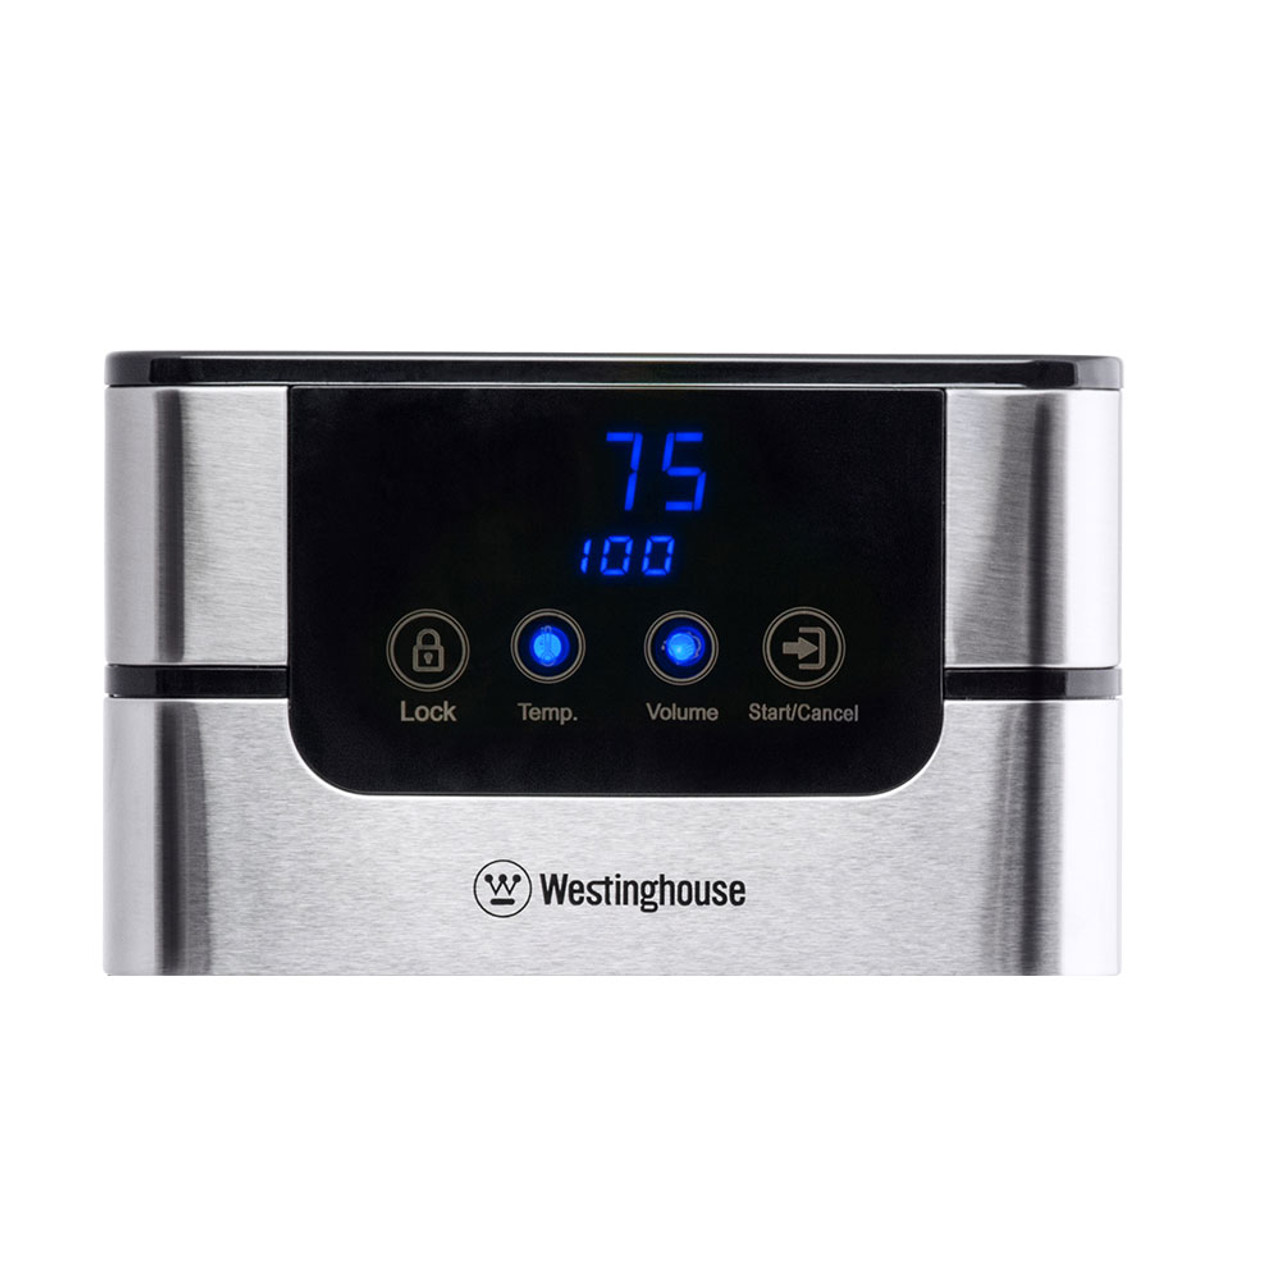 Westinghouse WHIHWD01SS 4L 2400W Instant Hot Water Dispenser - Black/Sliver